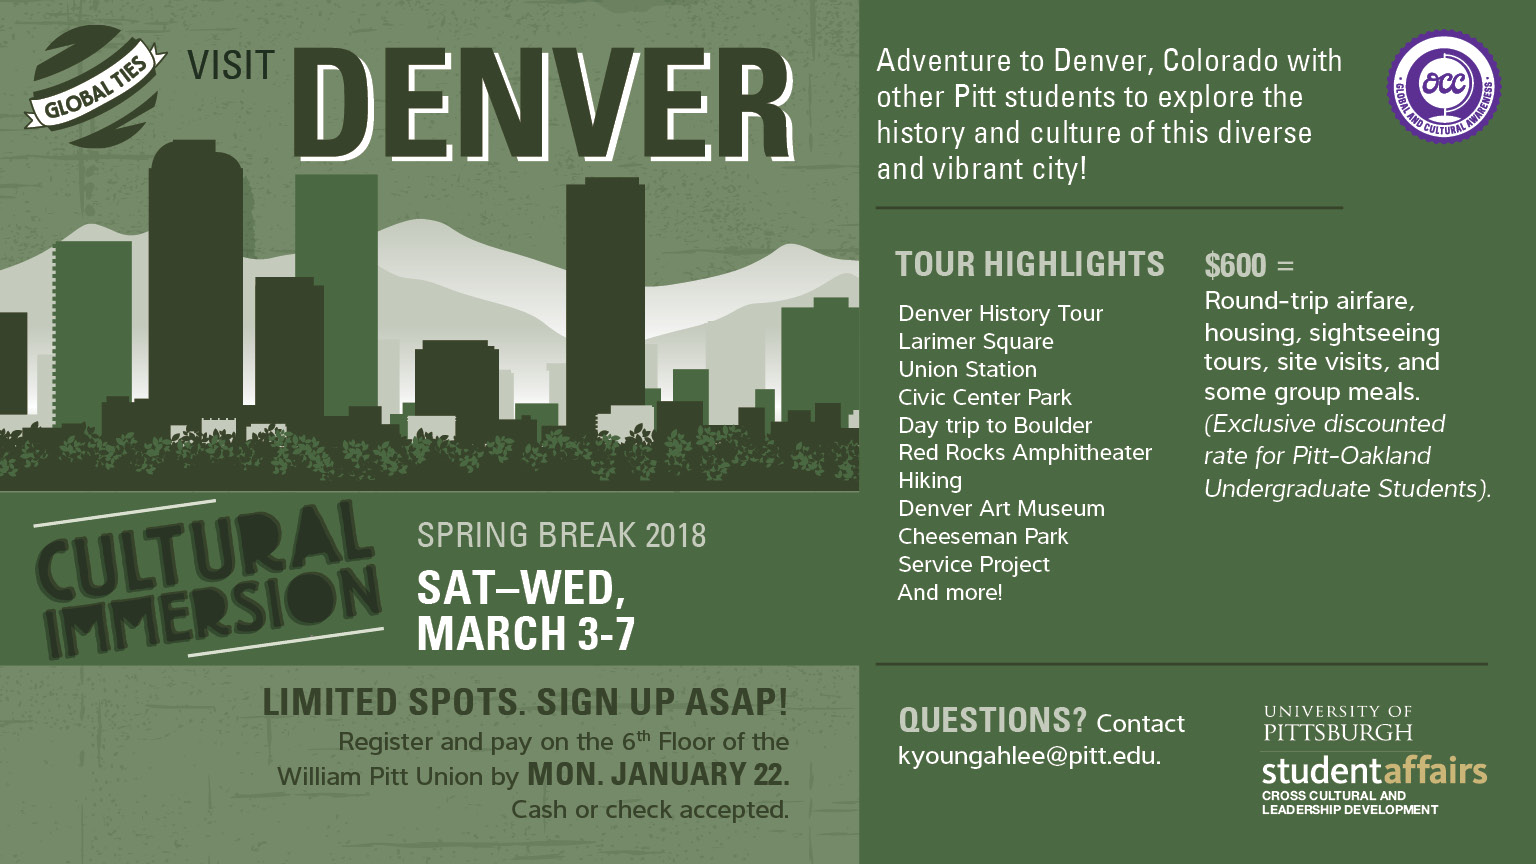 Culturalimmersion-DENVER_Jan 22